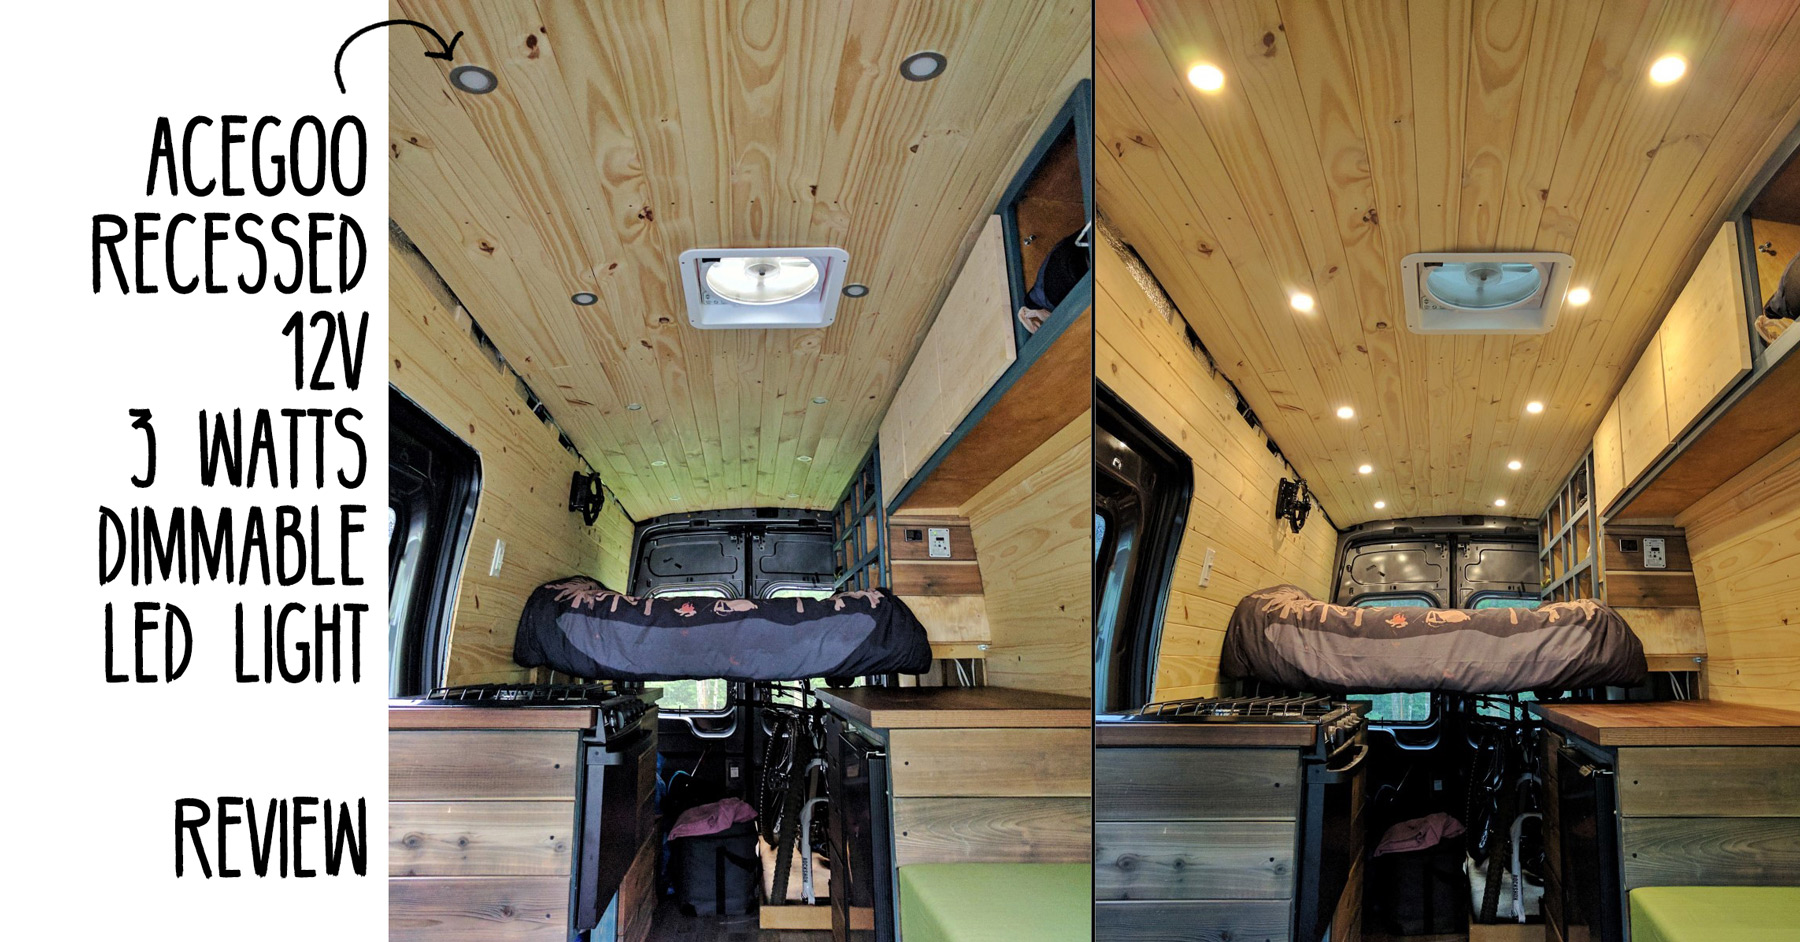 Recessed Ceiling Led Lights For Van Conversion Faroutride Camper Light Wiring Diagram